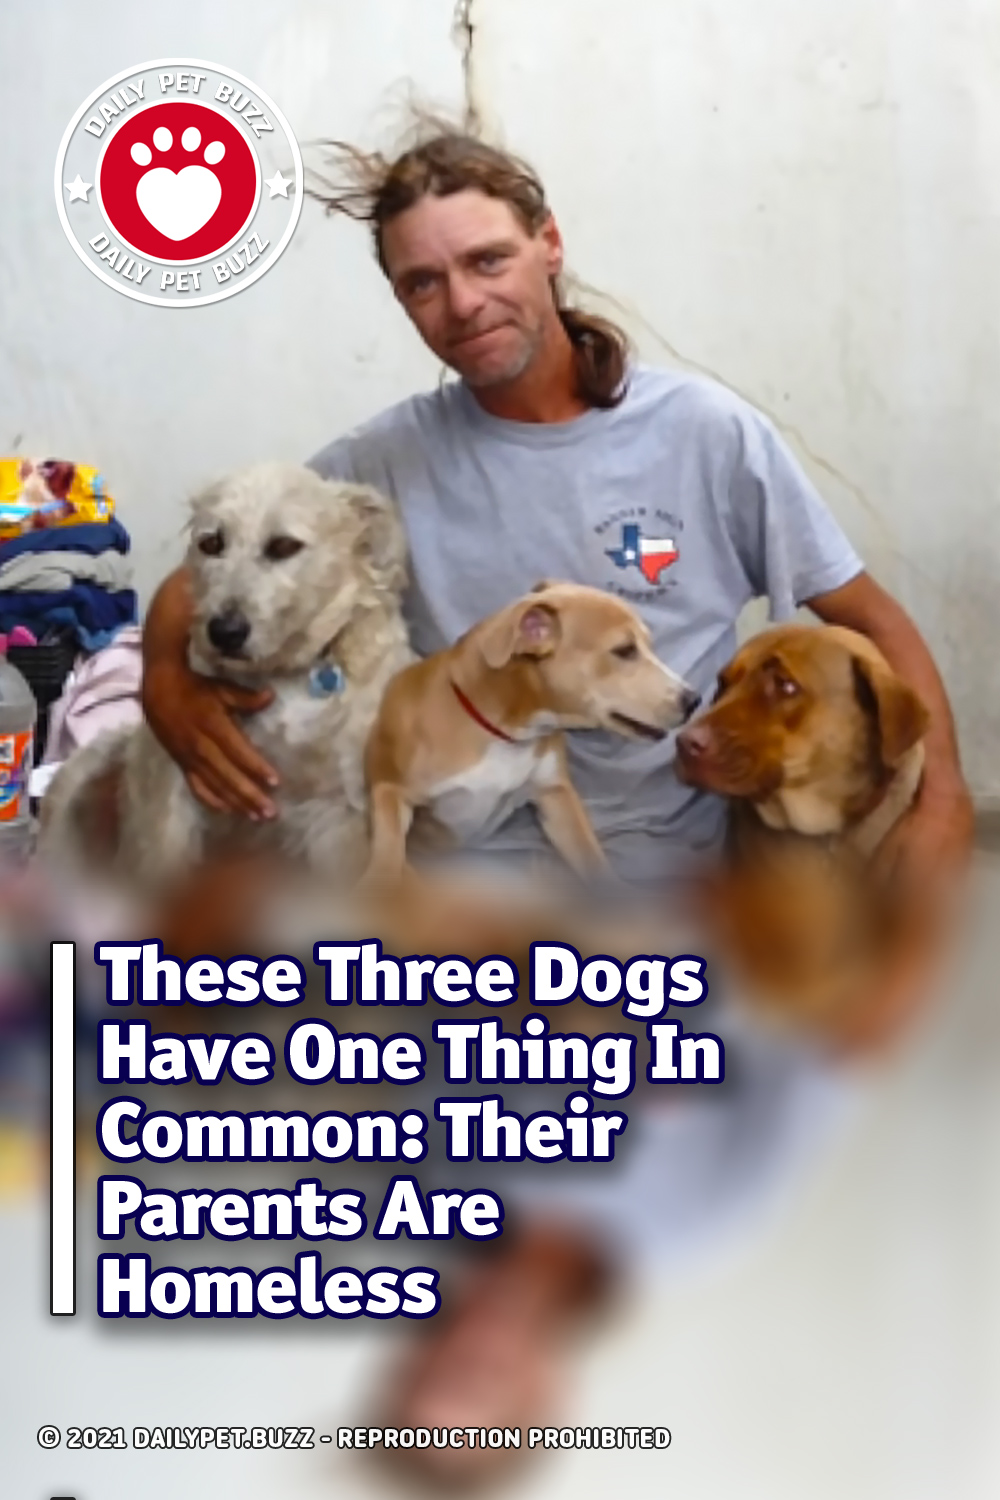 These Three Dogs Have One Thing In Common: Their Parents Are Homeless